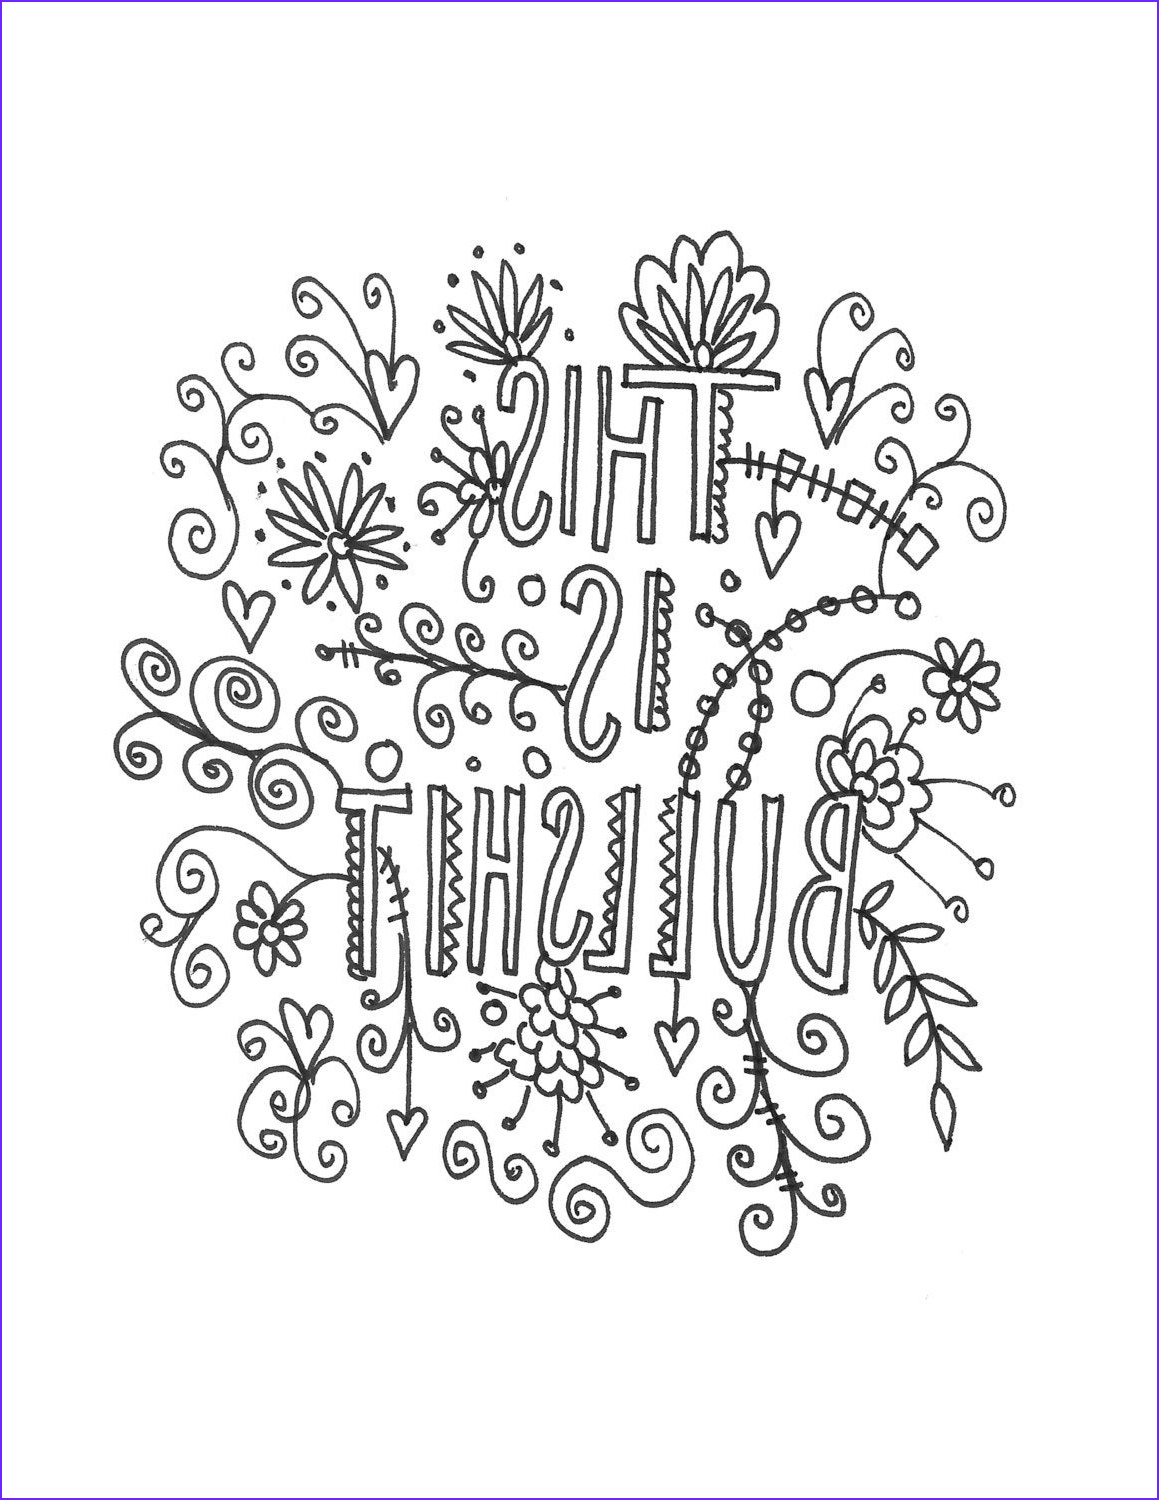 Quote Coloring Sheet Luxury Image Quote Coloring Page Instant Download Line Art Illustration